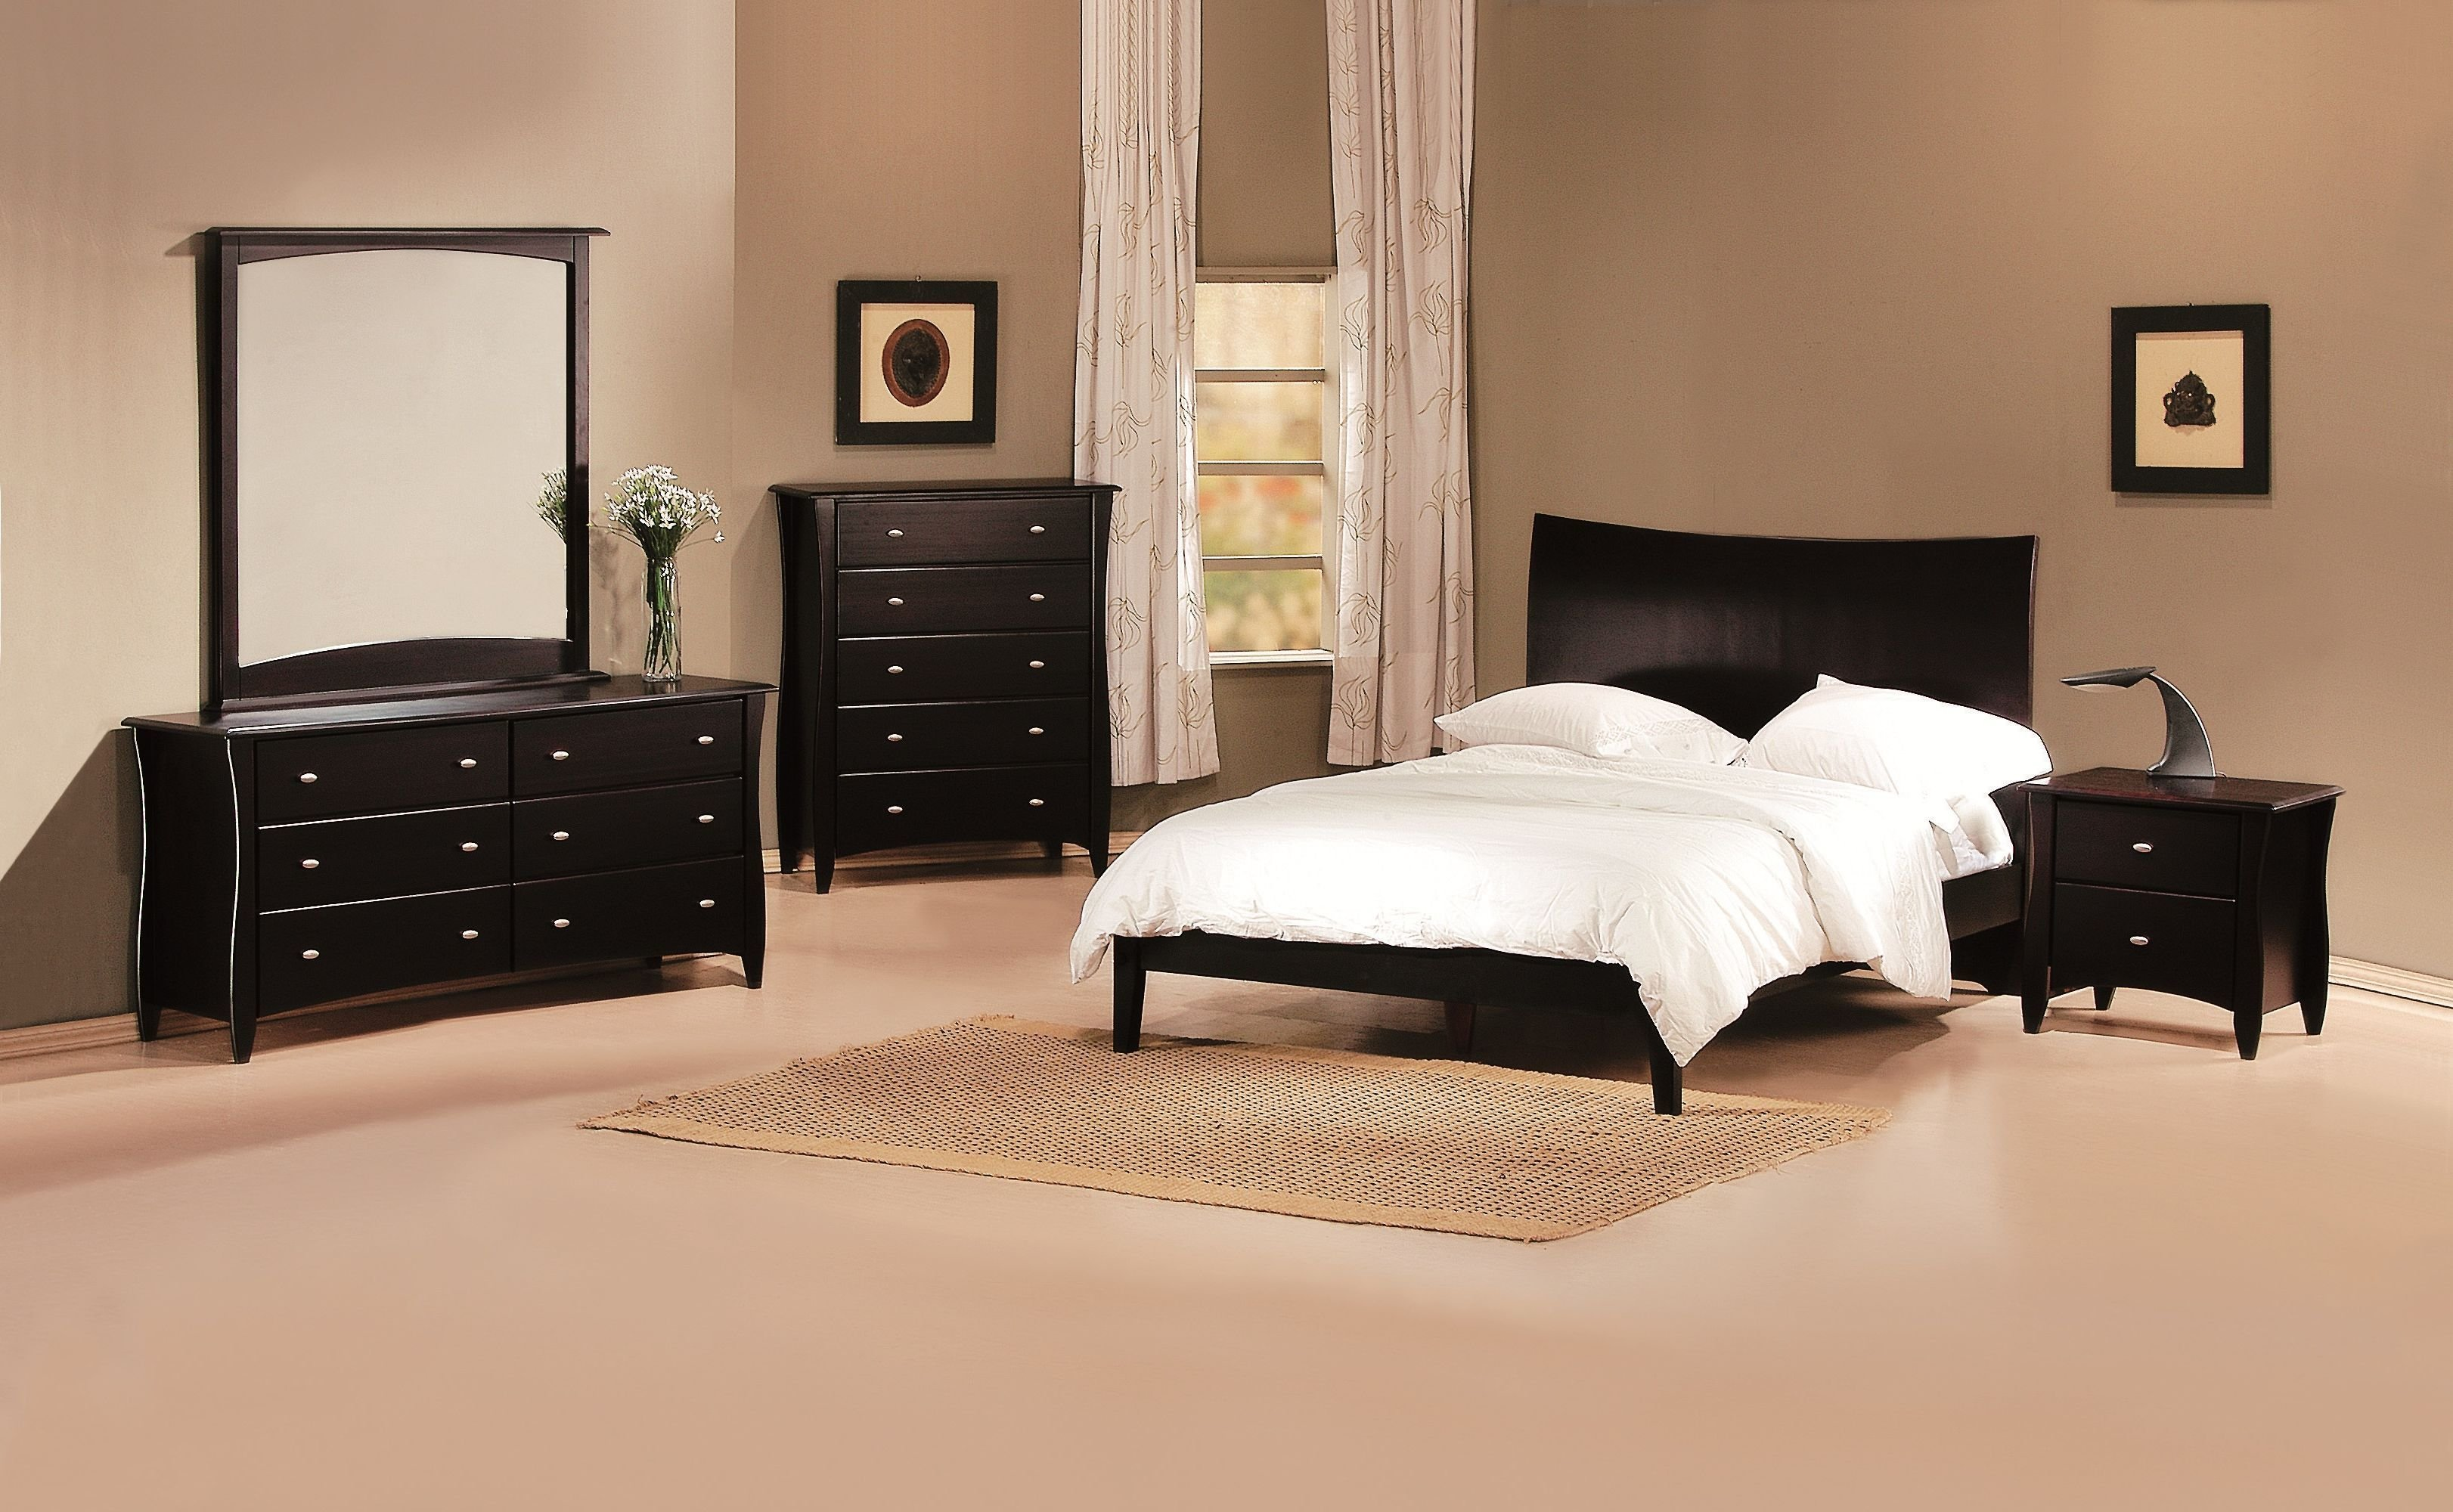 Best Cheap Bedroom Furniture Under 200 Www Gradschoolfairs Com With Pictures